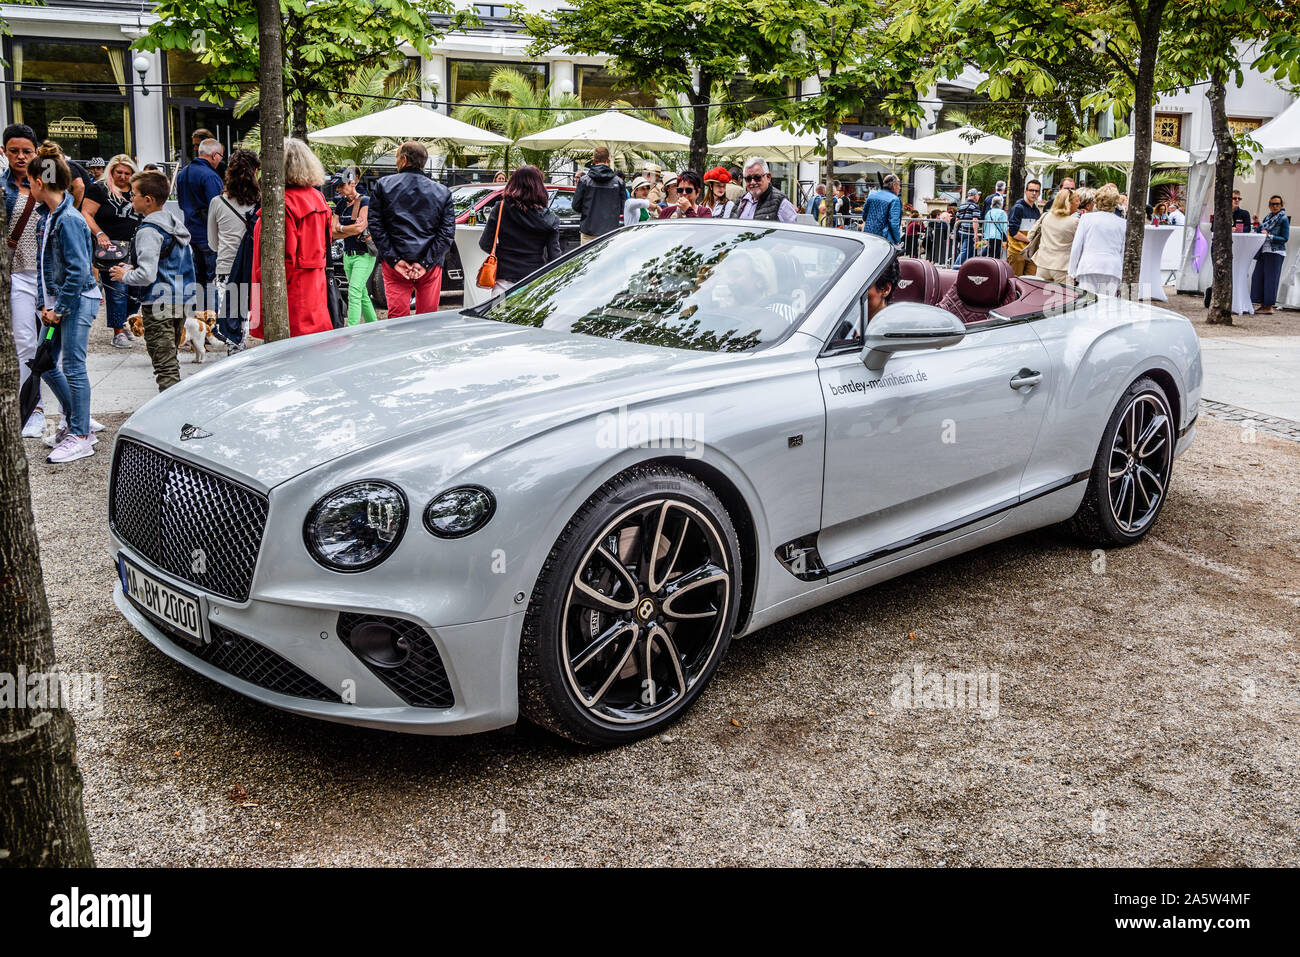 White Bentley Continental Gt High Resolution Stock Photography And Images Alamy